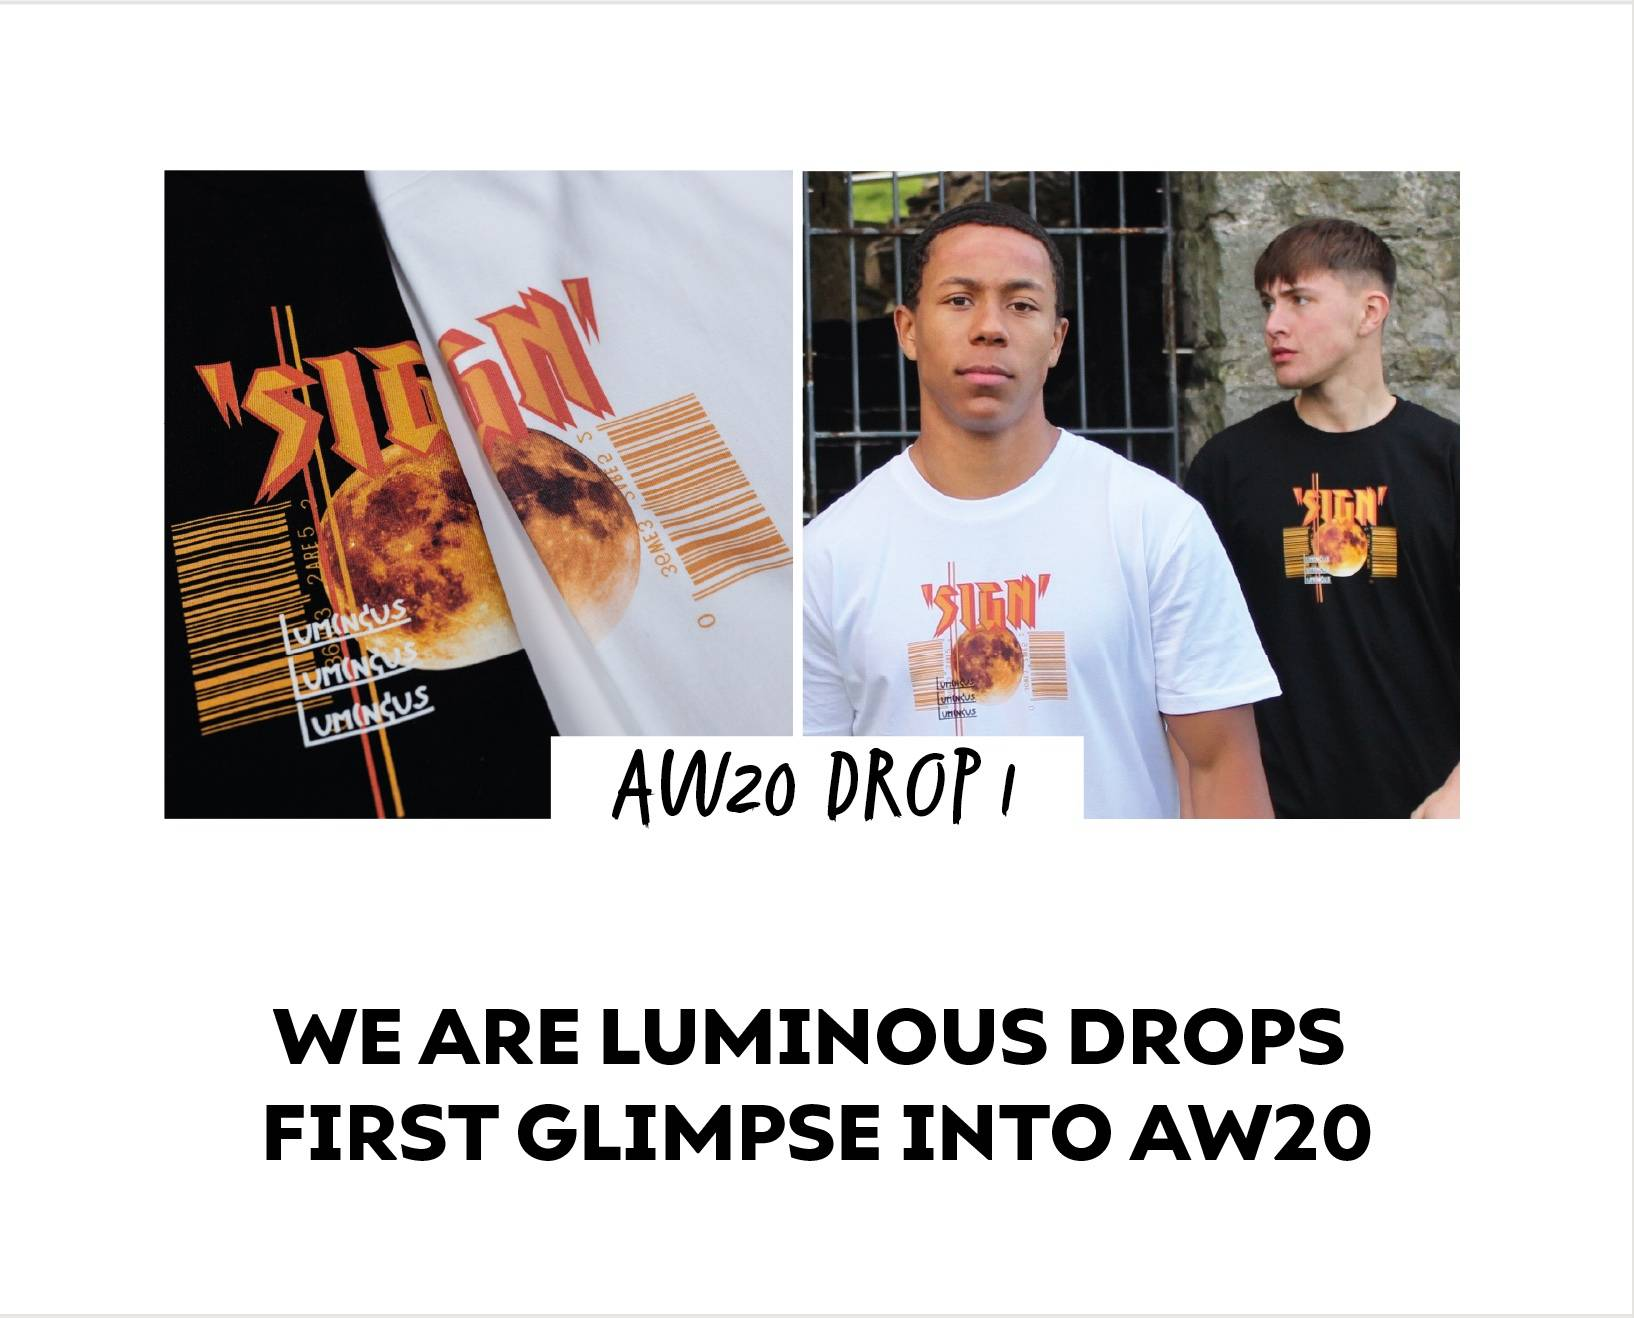 We Are Luminous London Drops First Glimpse Into AW20